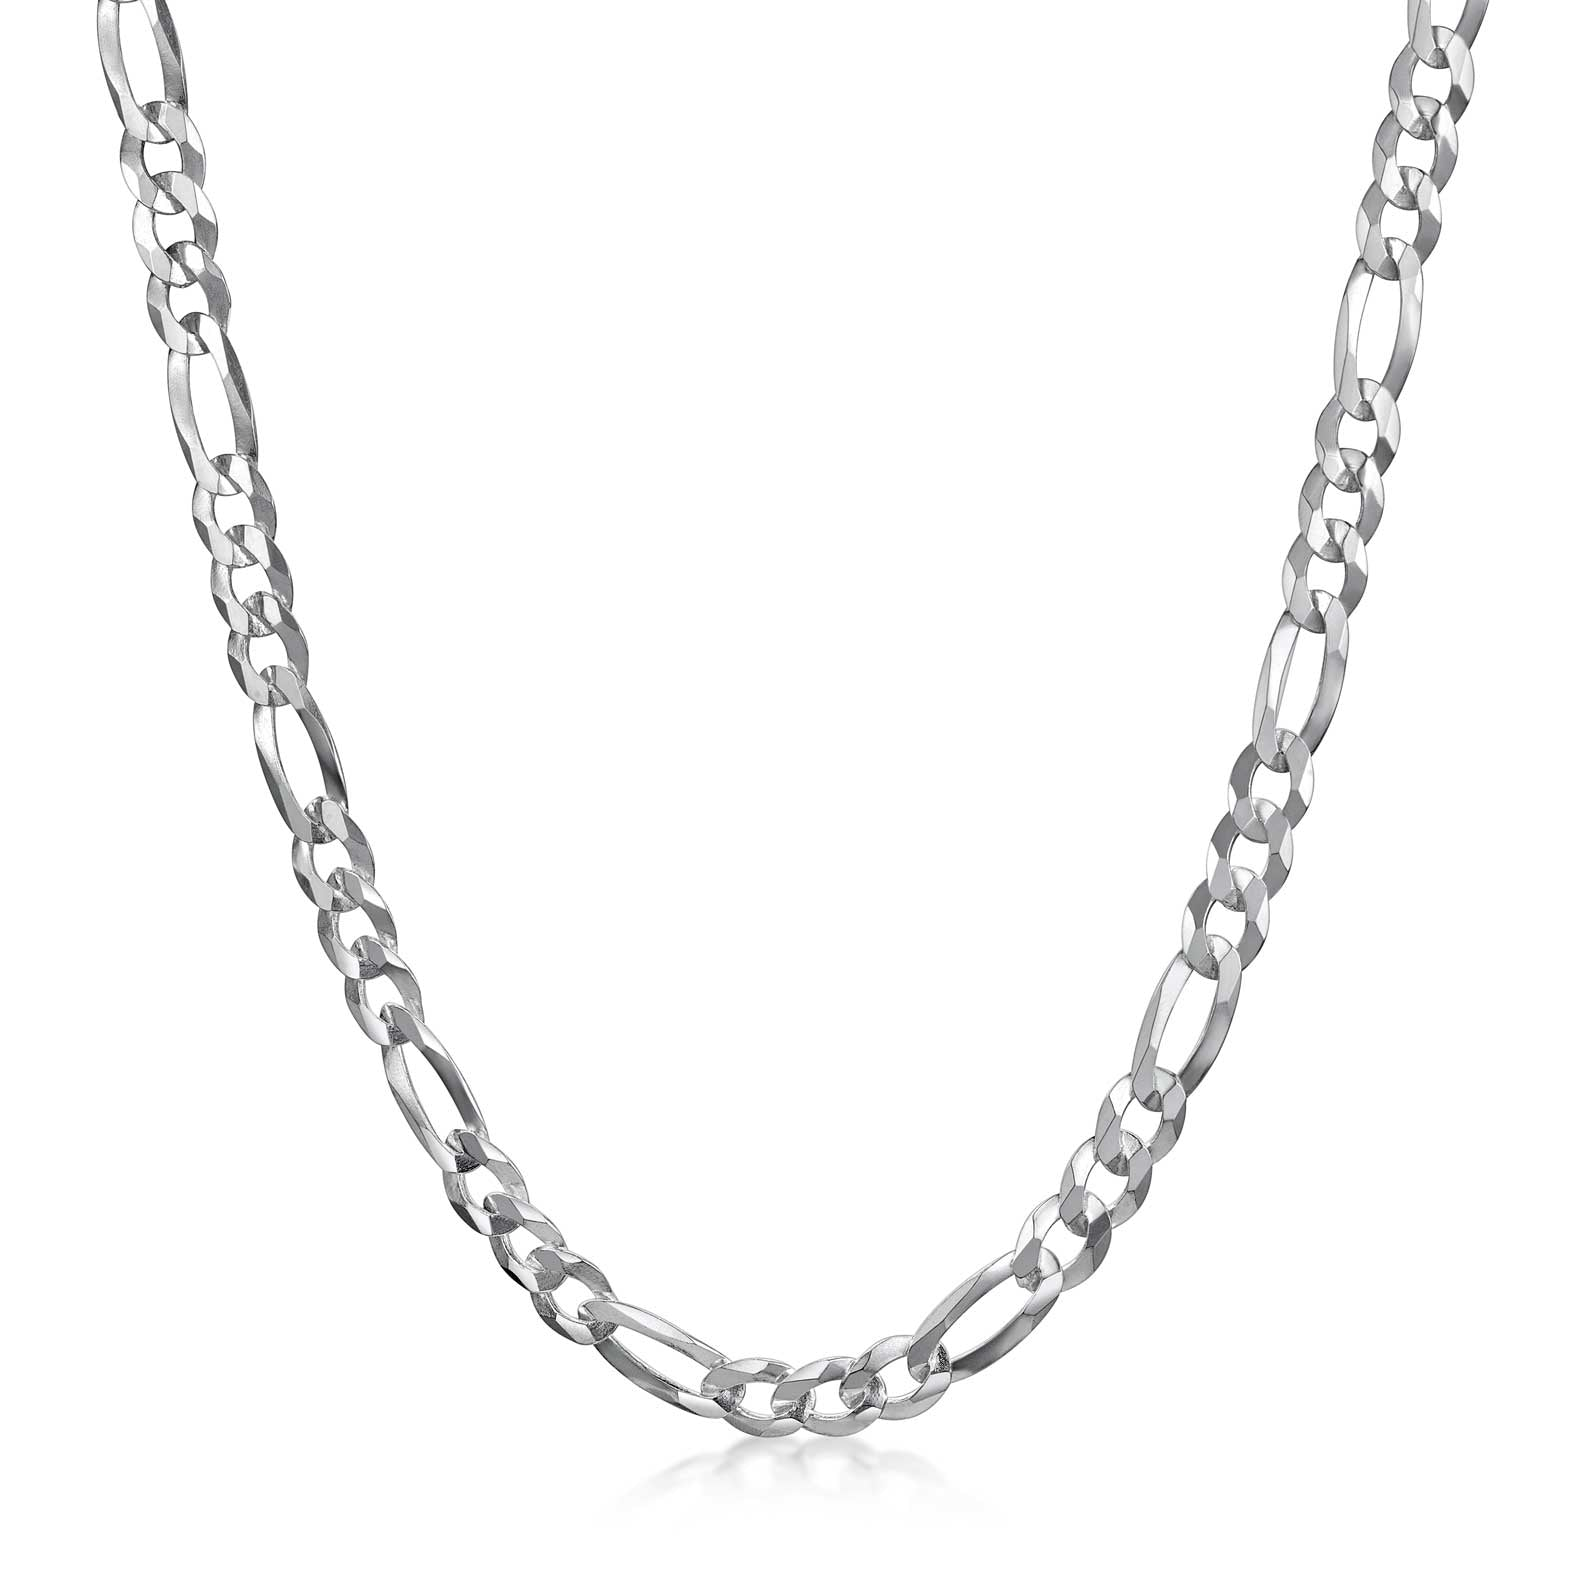 Amberta Men's Silver 4.7 mm Flat Figaro Chain